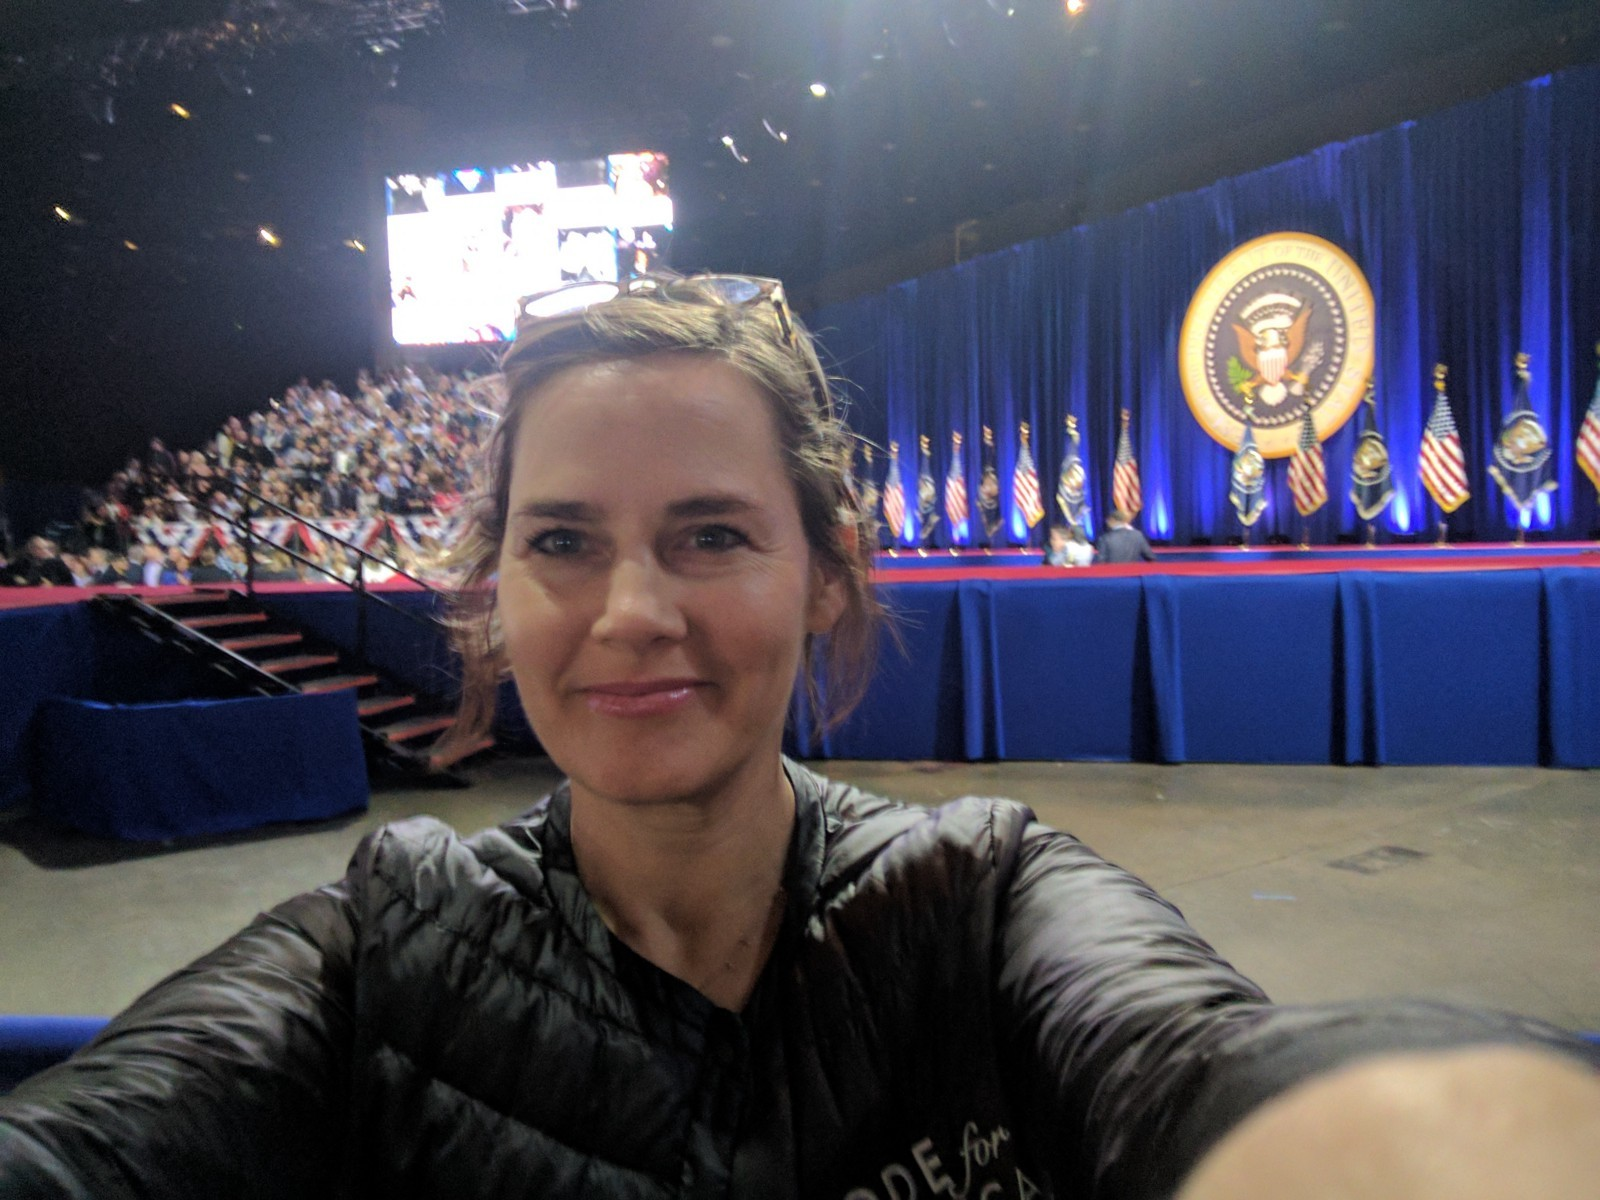 <p>McCormick Place, Chicago, January 10, 2017</p>